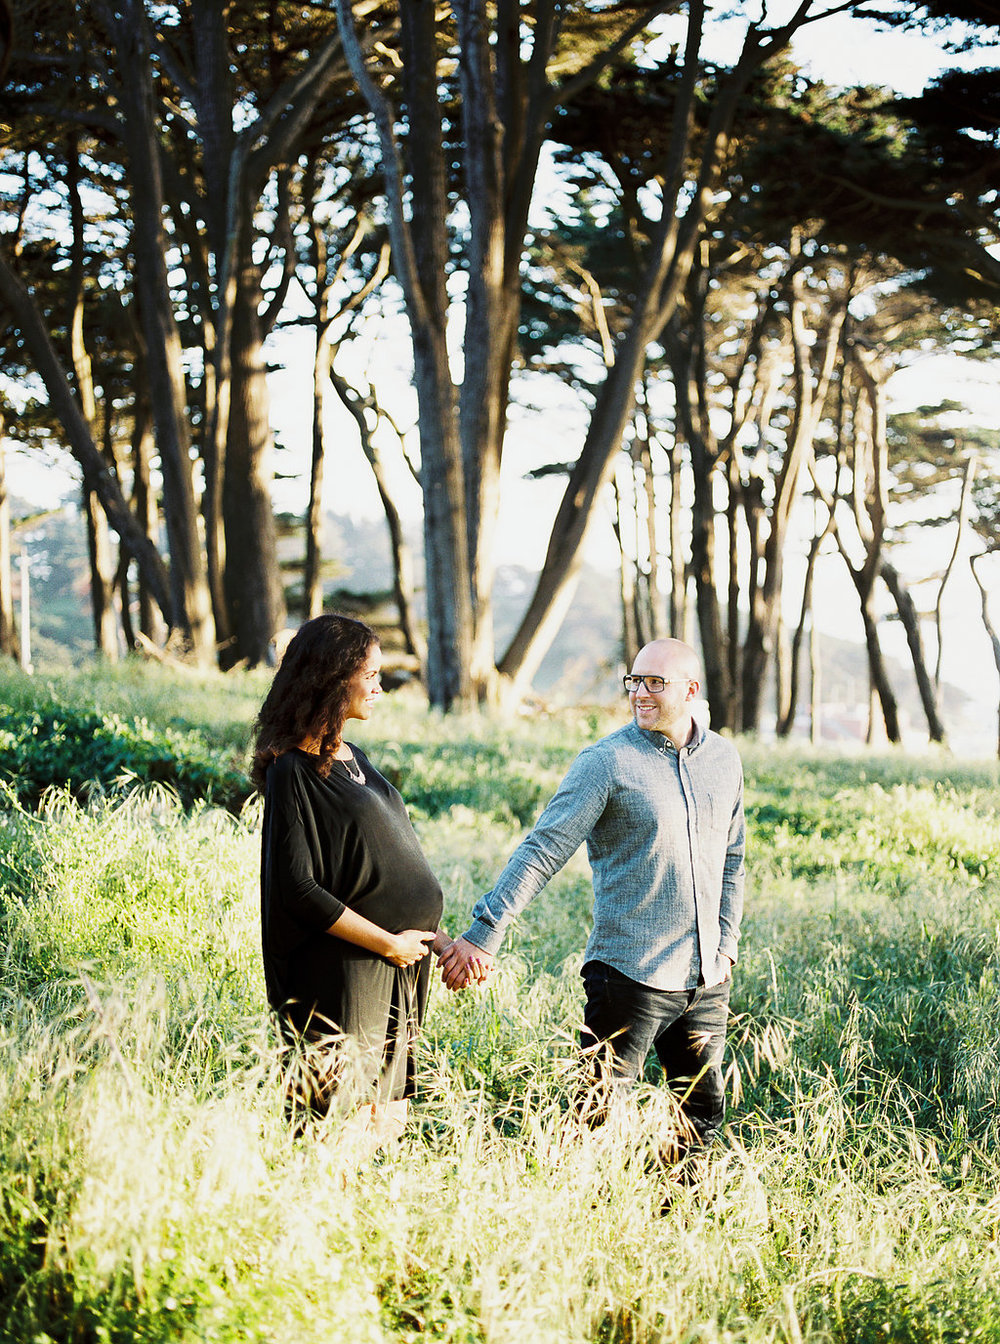 San Fransisco wedding photographer Kibogo Photographer | maternity photos in SF 3.JPG